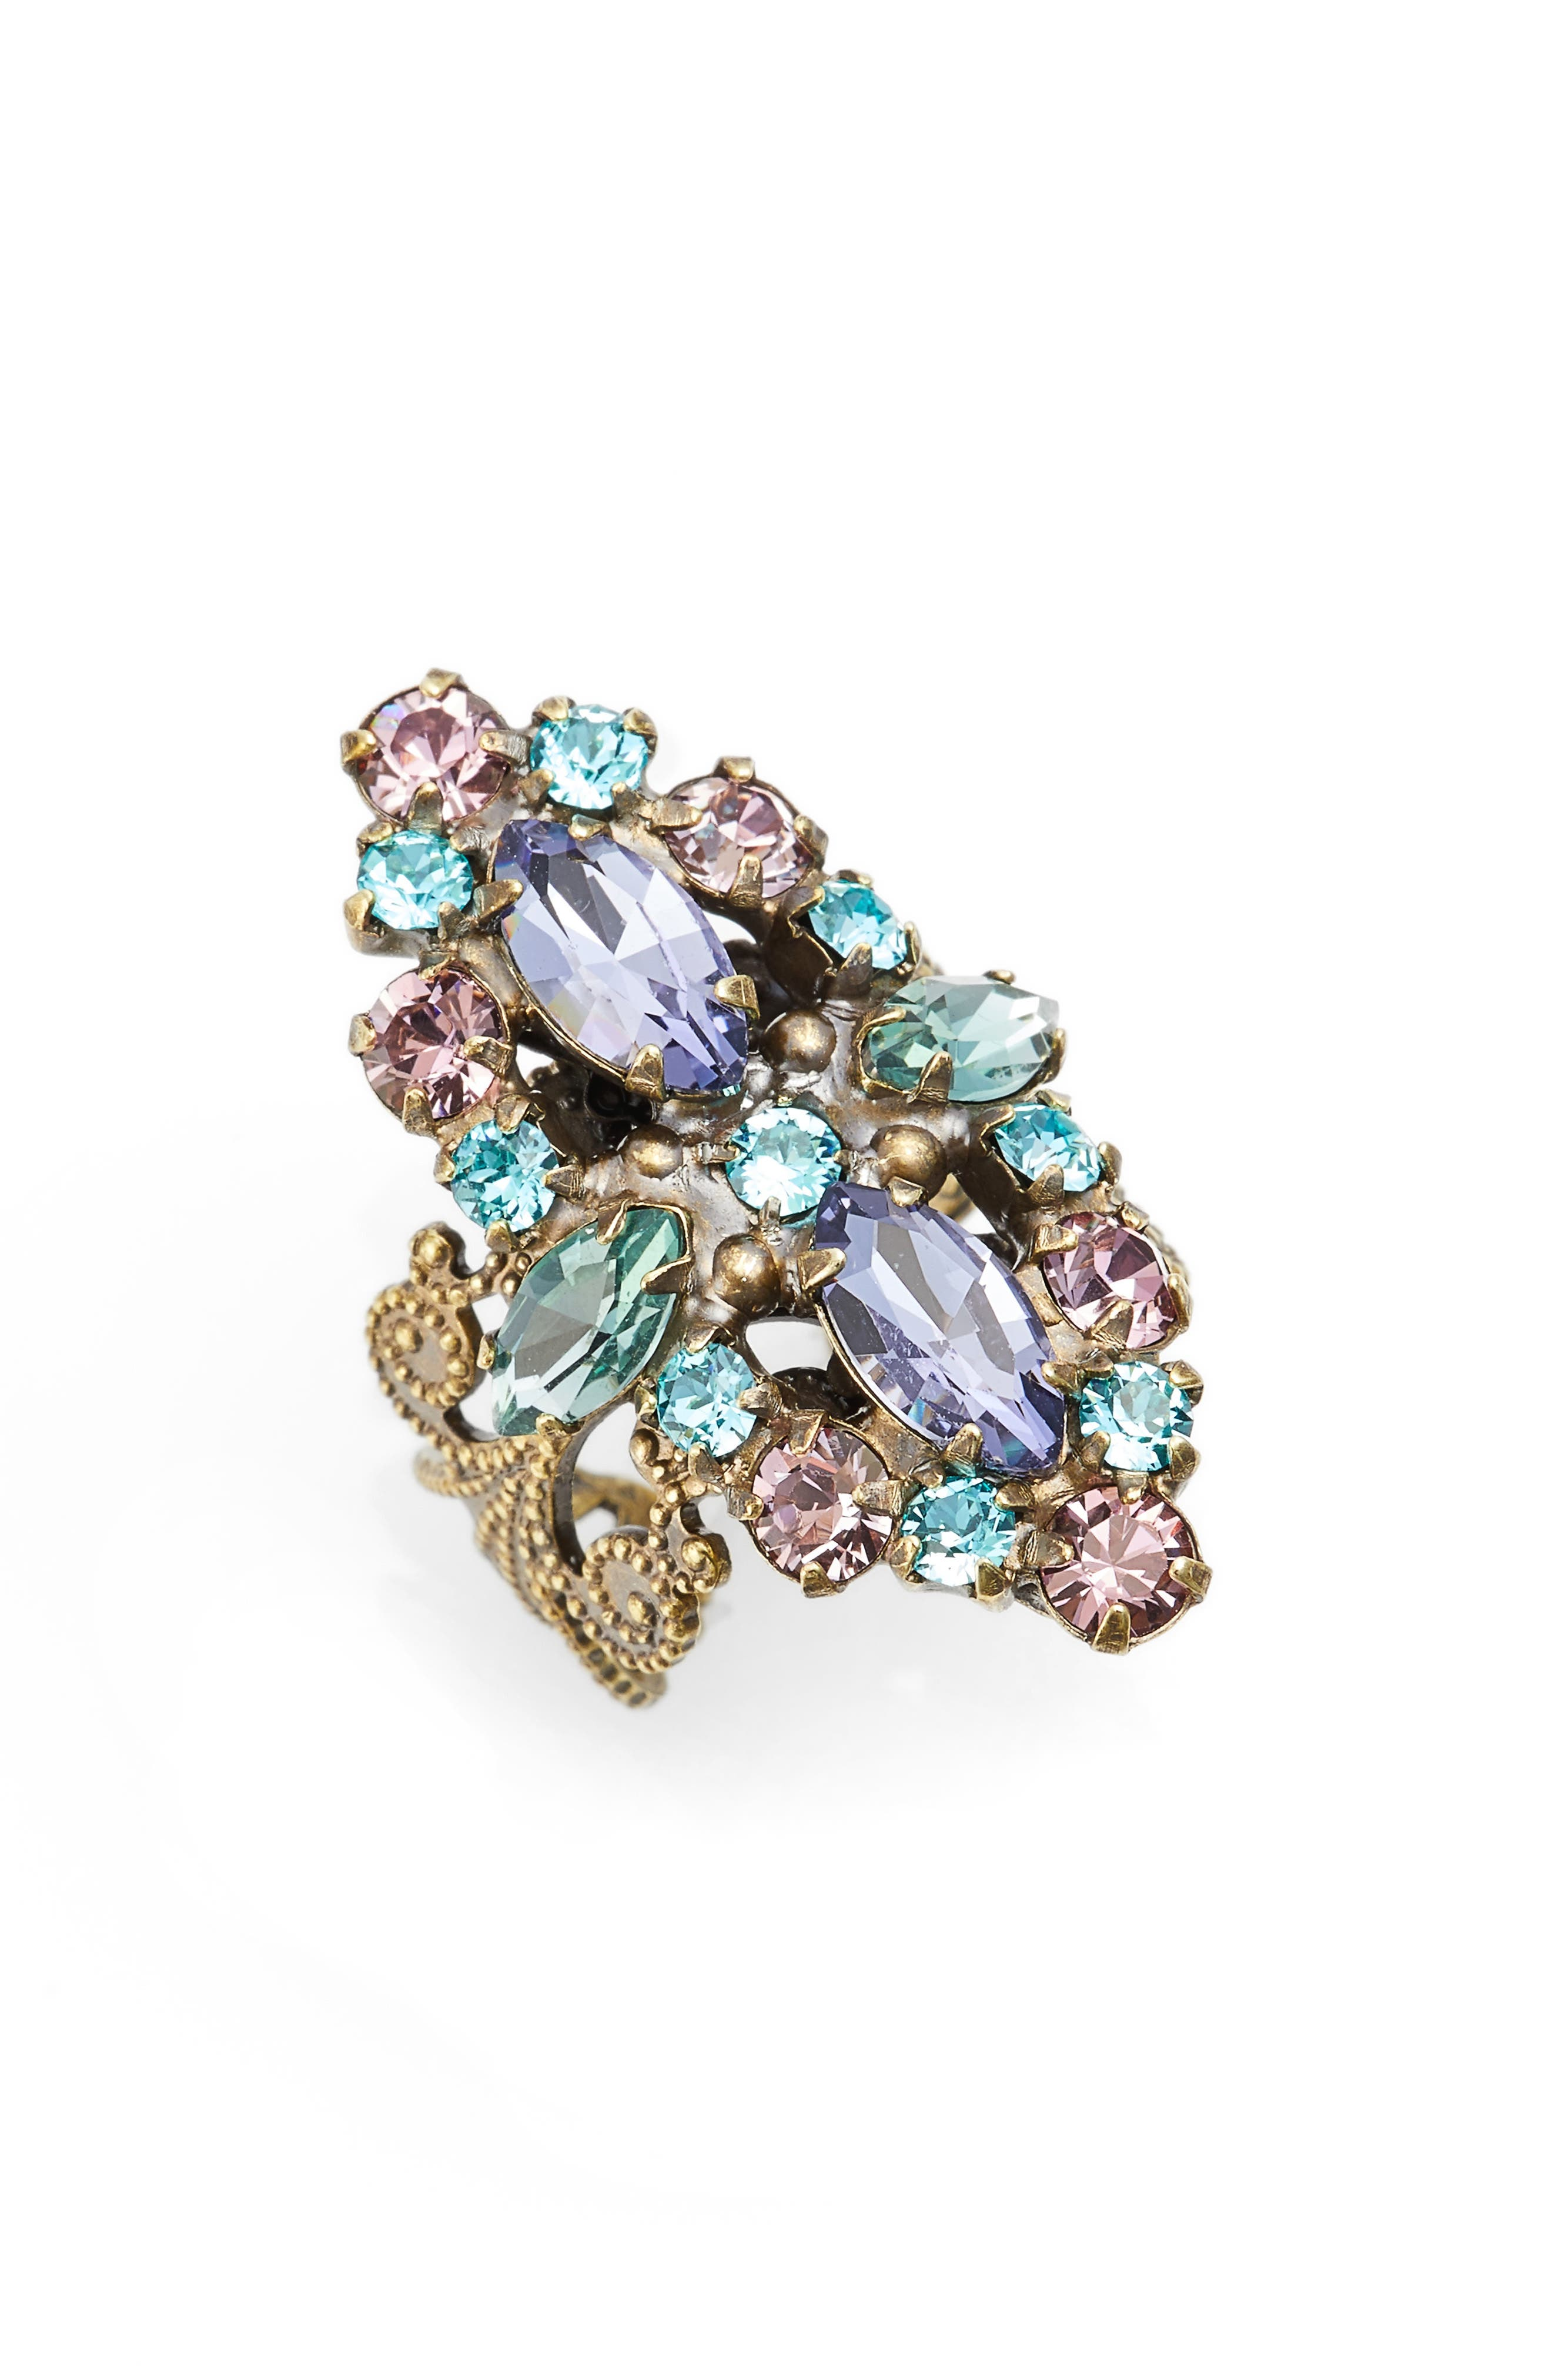 Edelweiss Crystal Cocktail Ring,                             Main thumbnail 1, color,                             710